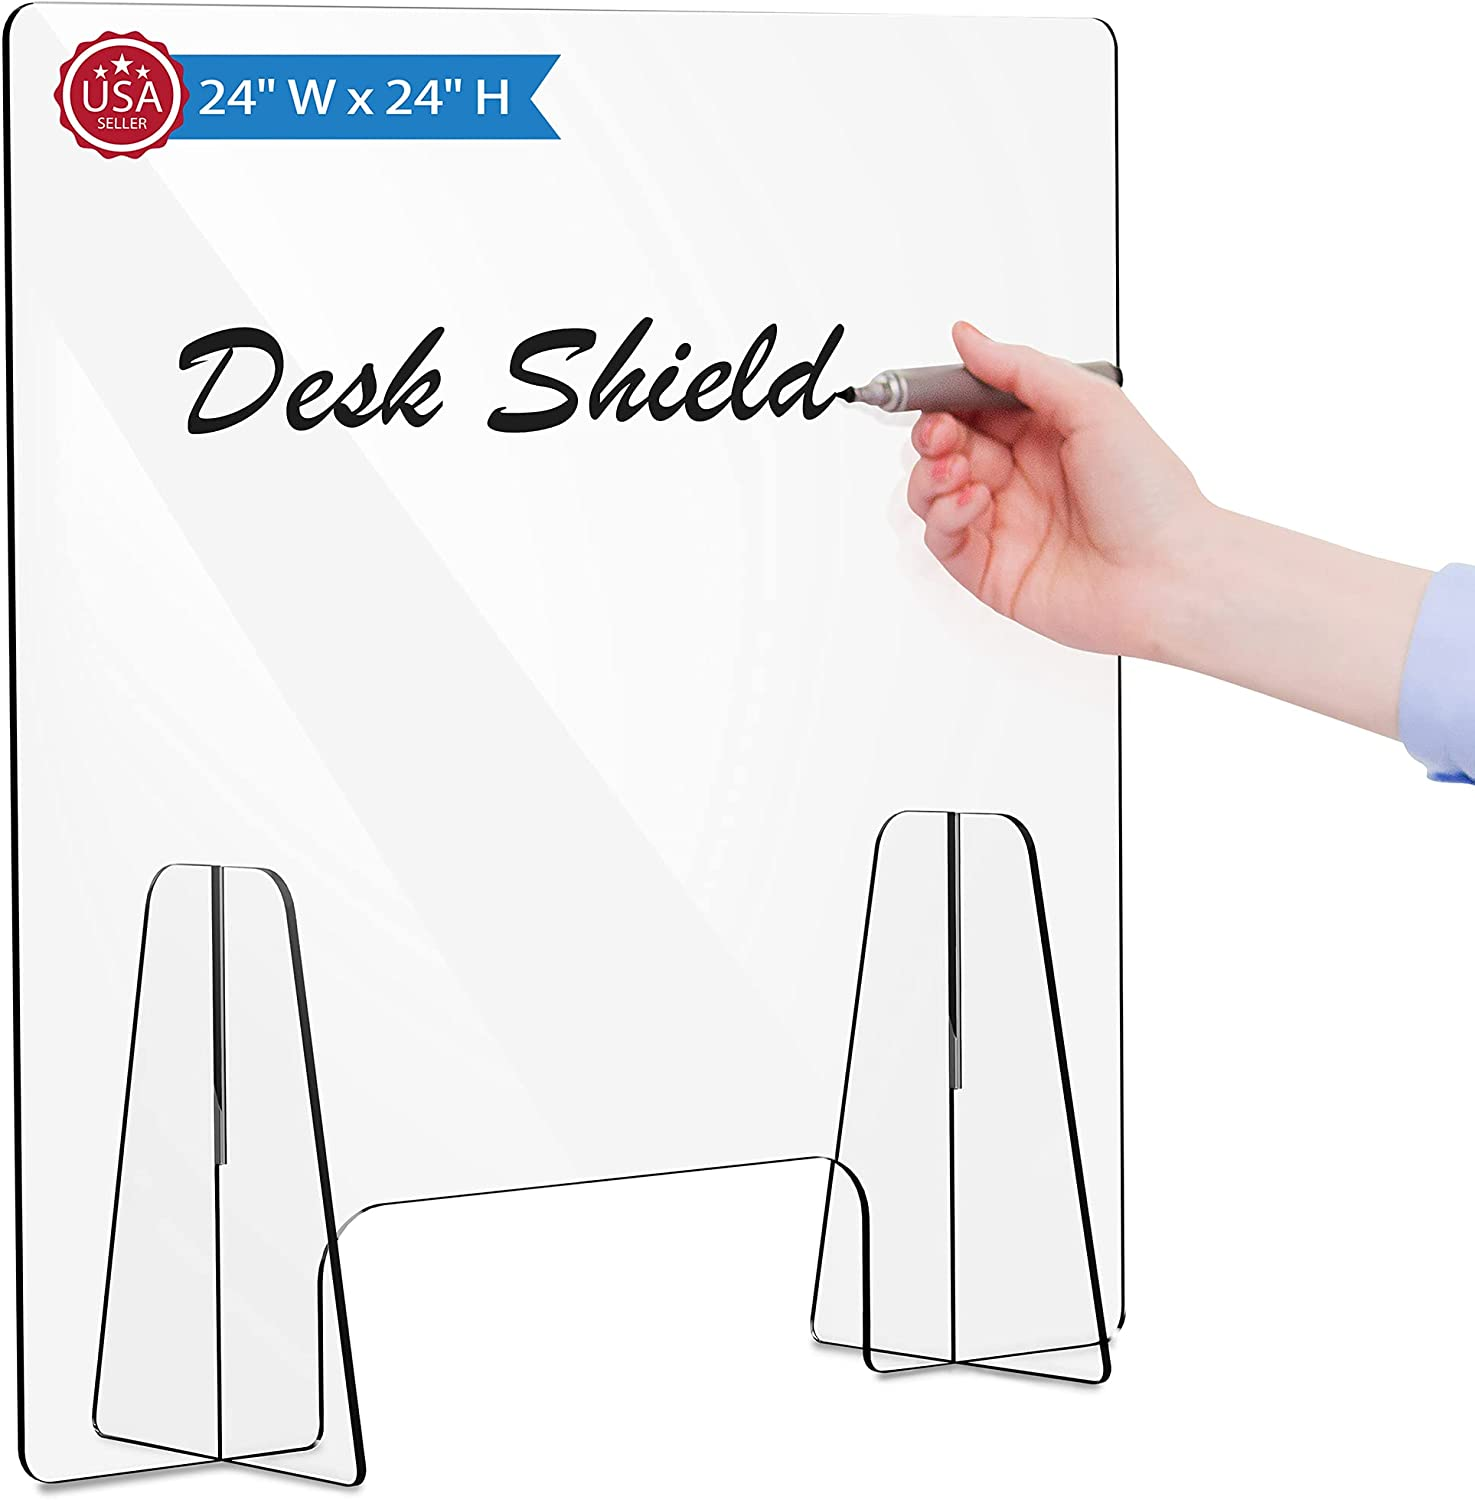 """Sneeze Guard for Counter - 23.6"""" W x 23.6"""" H with 3.9 Inch Cutout - Acrylic Sneeze Guard for Desk, Reception, Office, Store - Protective Shield, Security Partition Barrier and Splash Guard Protector : Office Products"""